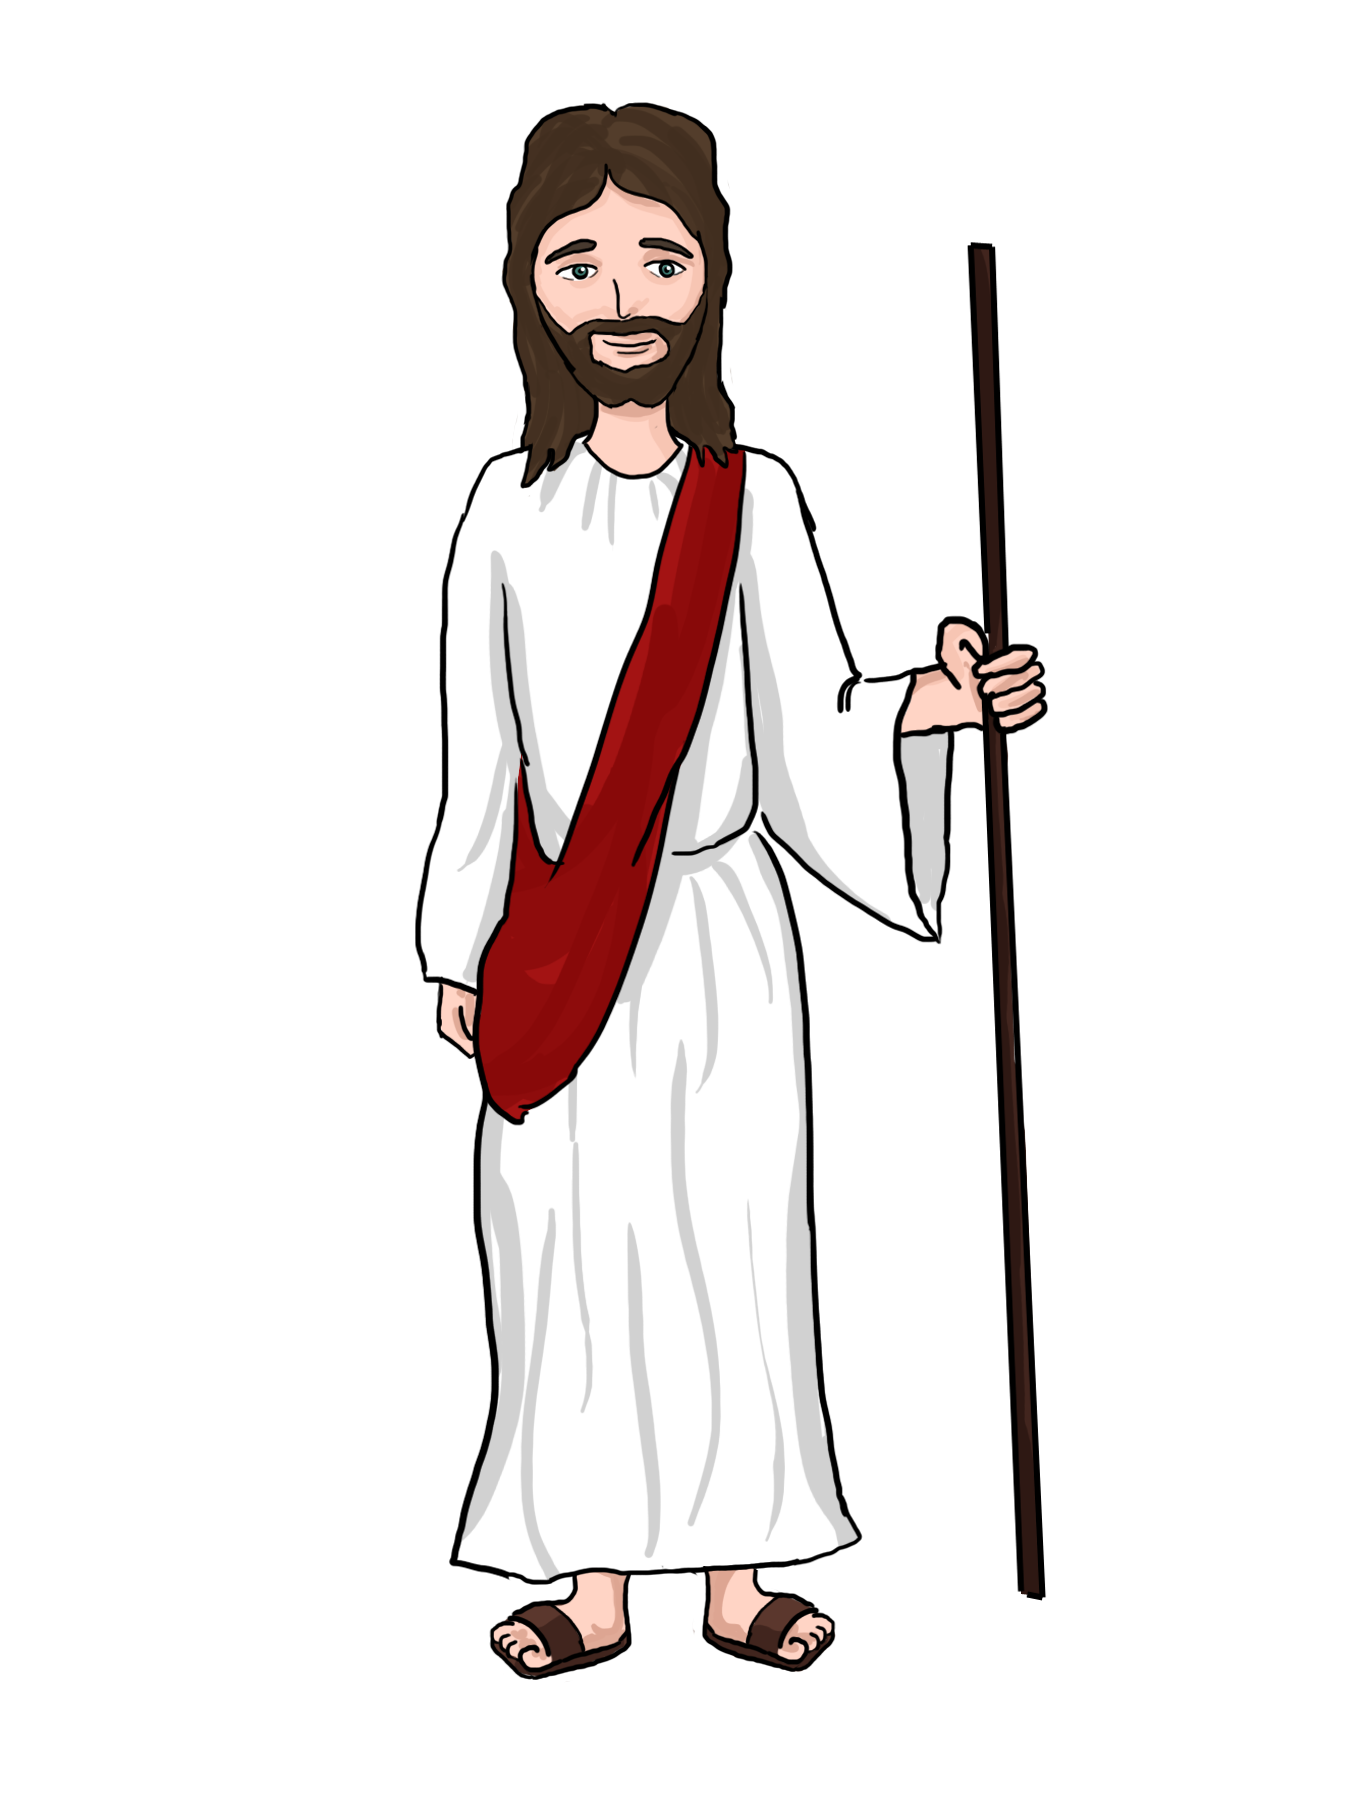 Free To Use Amp Public Domain Jesus Christ Clip Art